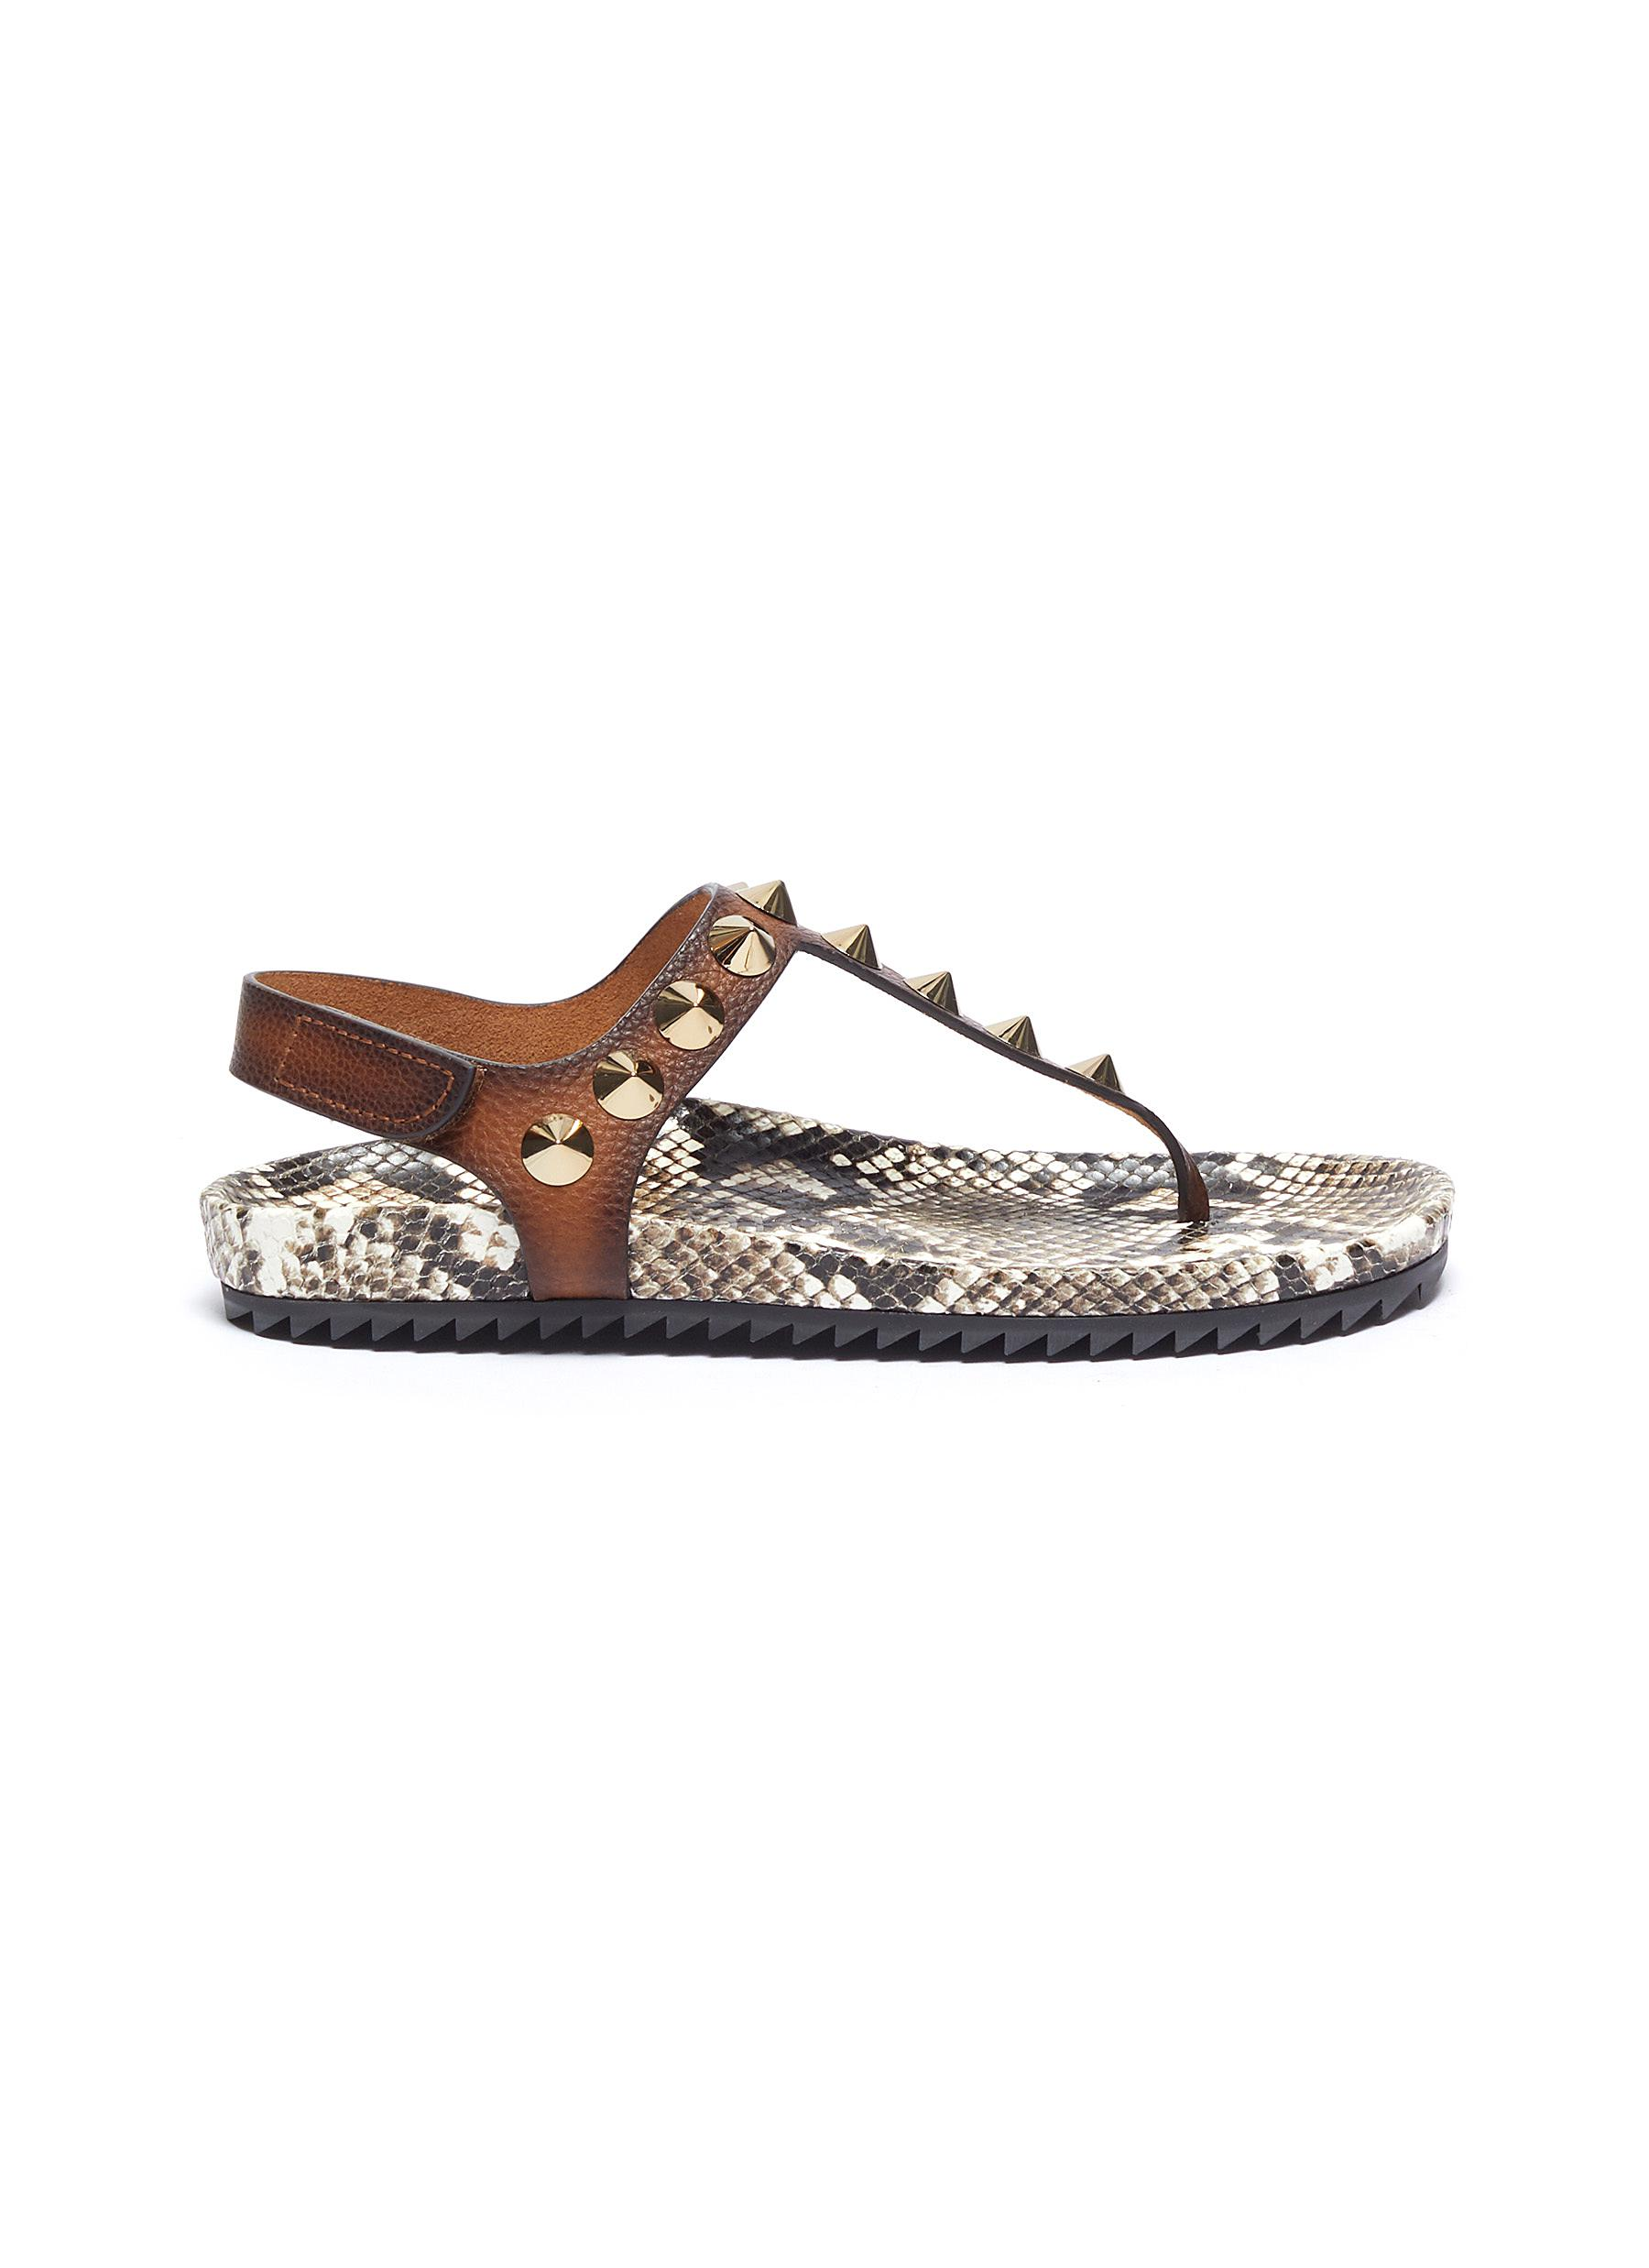 Athena cone stud leather thong sandals by Pedro García